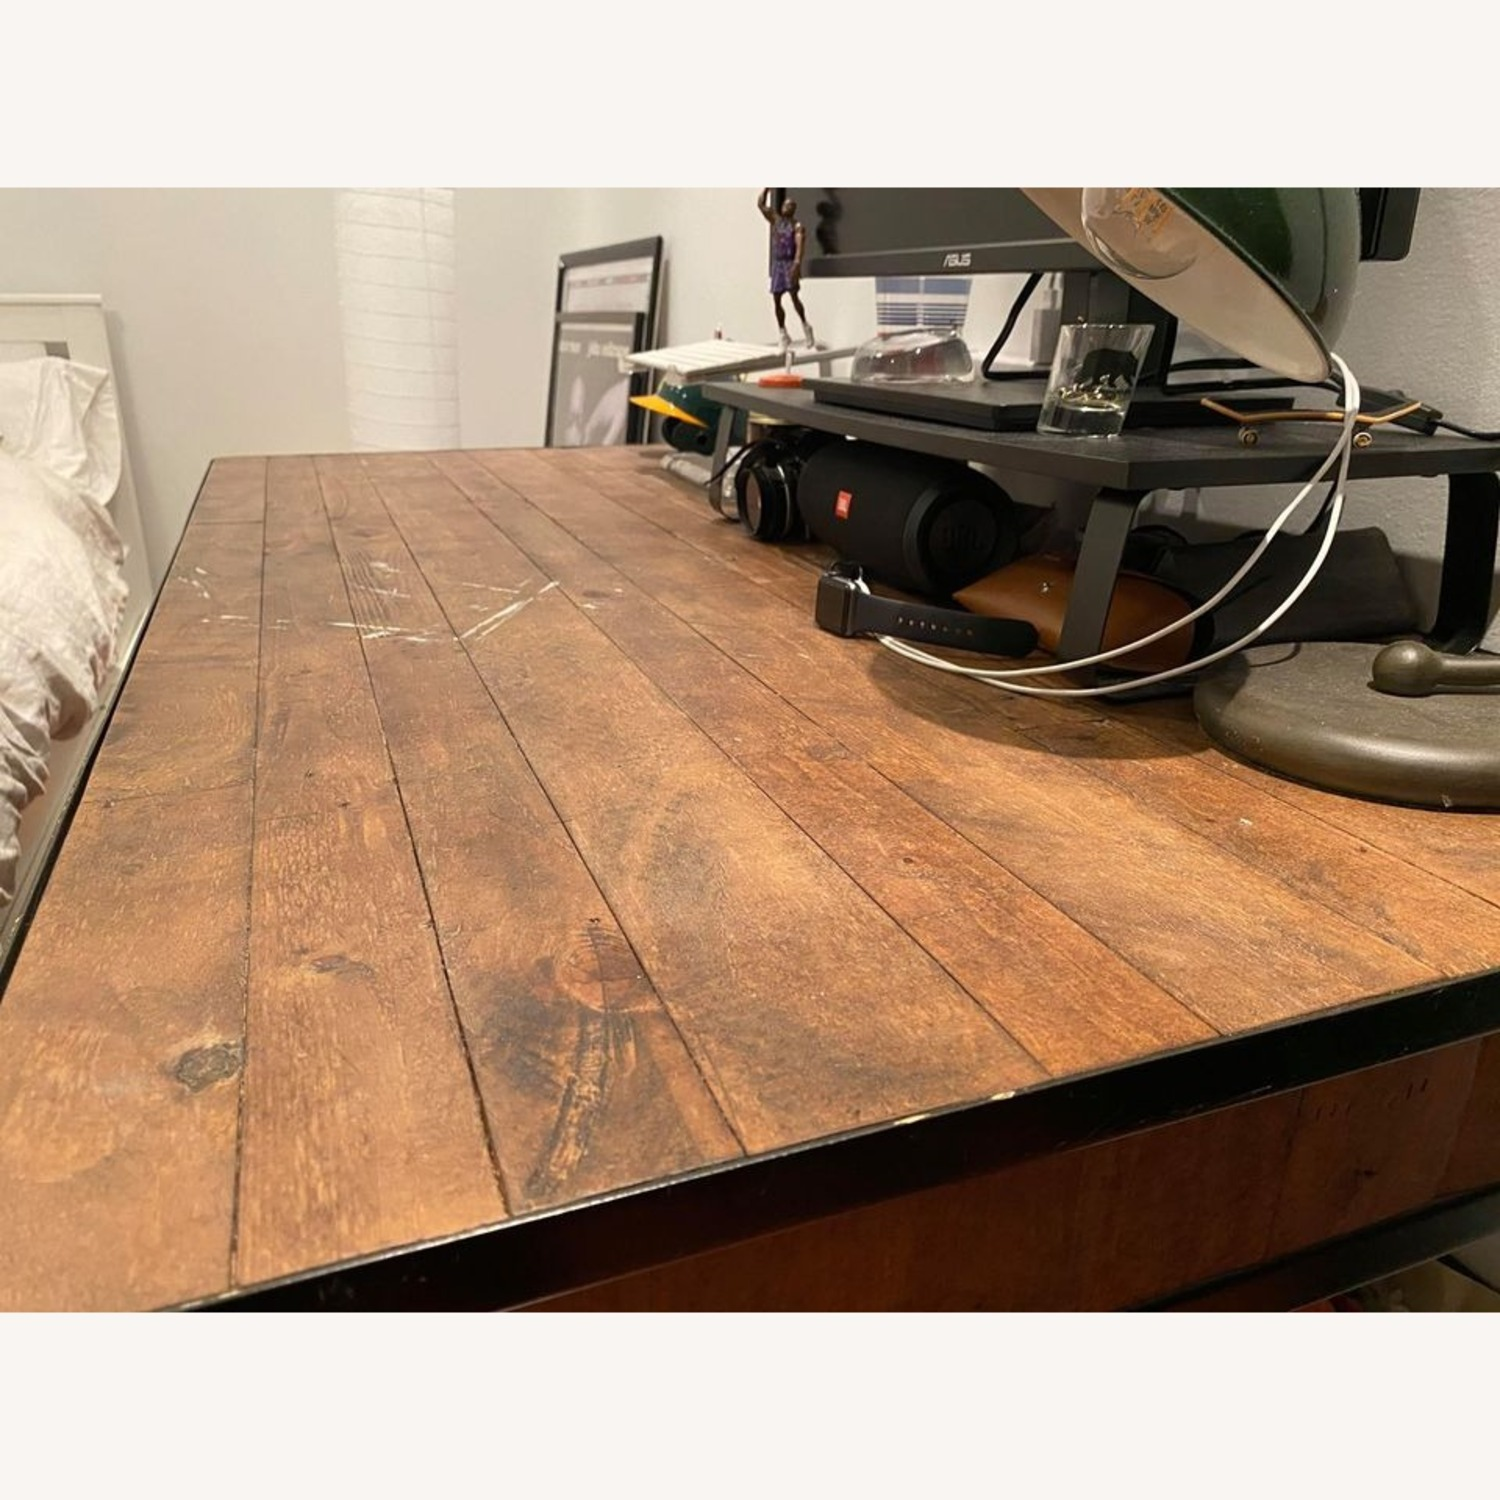 Pottery Barn Juno Reclaimed Pine Desk - image-2